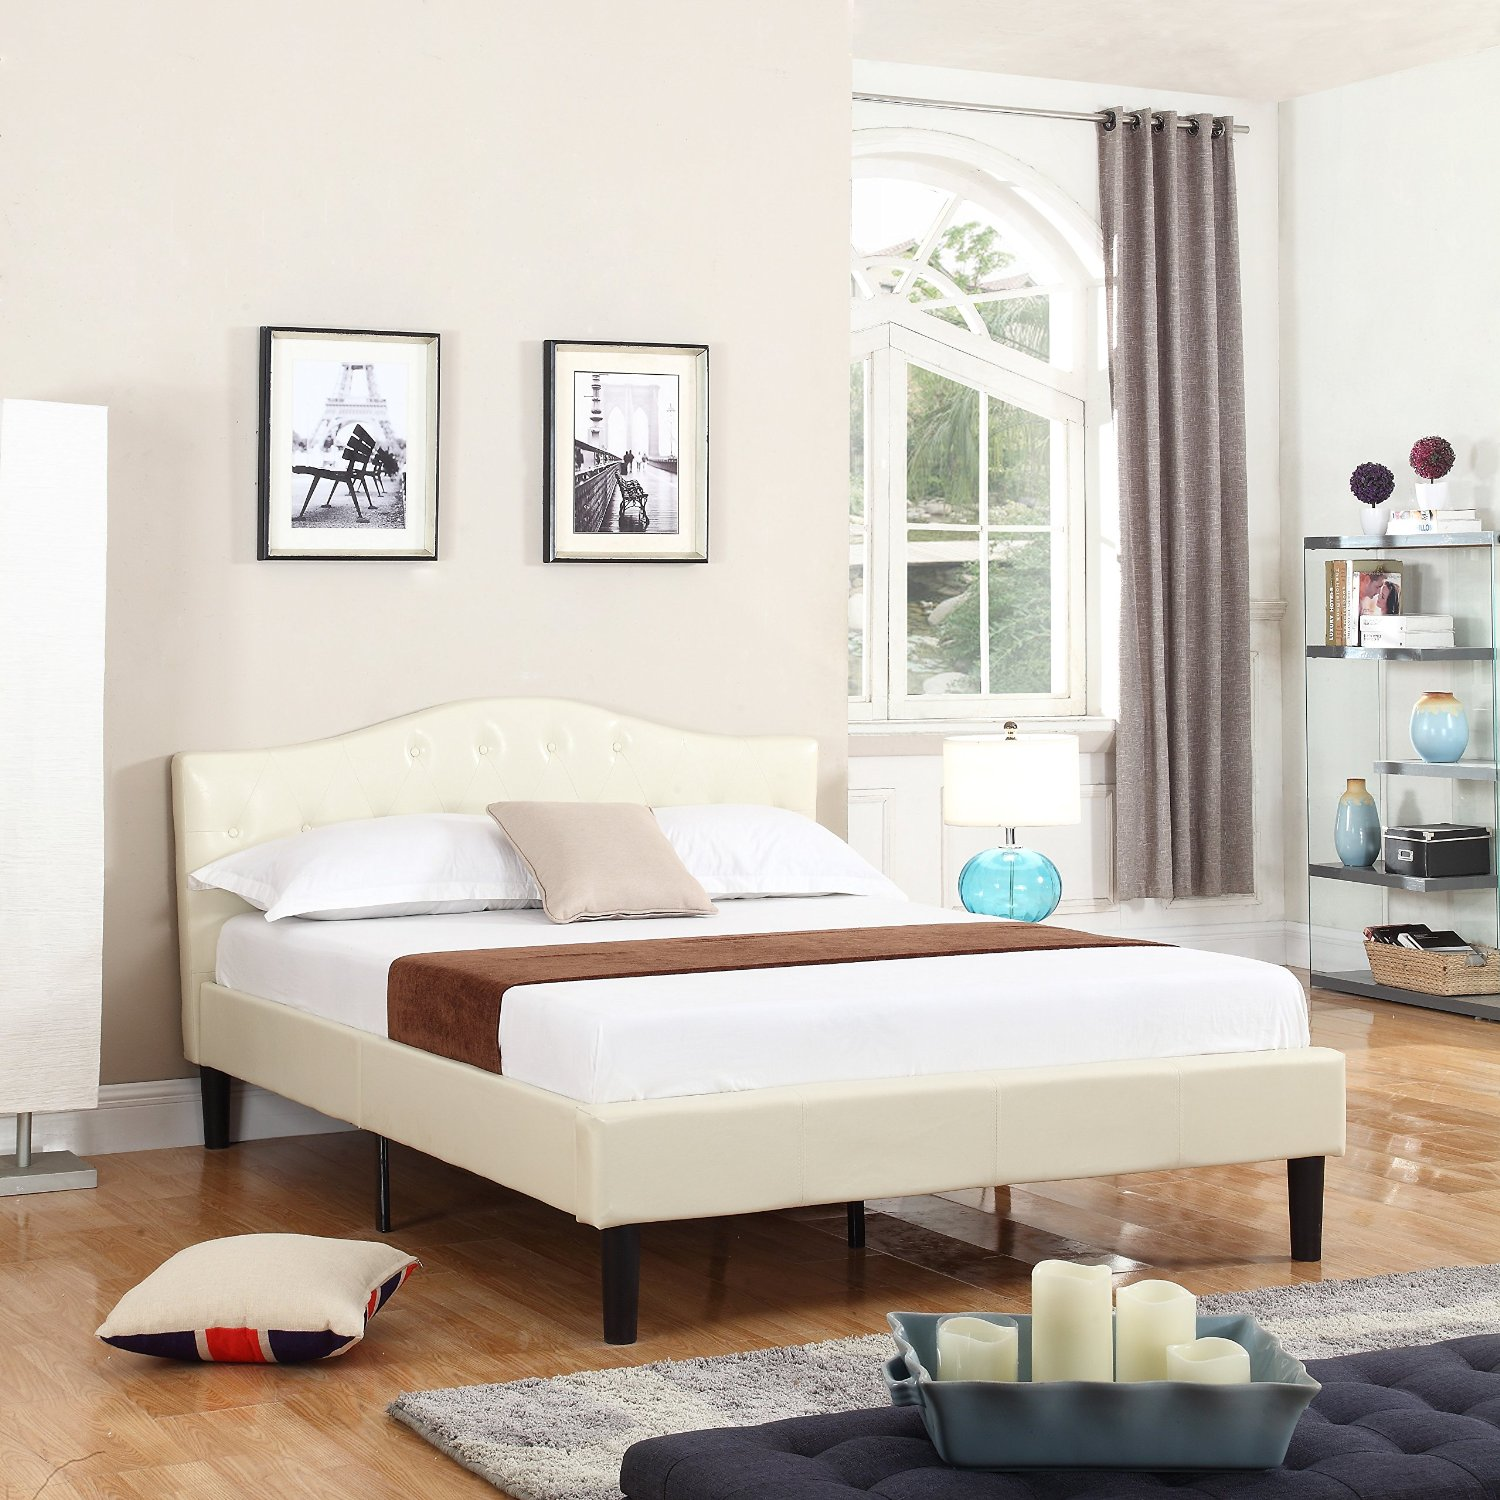 Divano Roma Furniture Classic Deluxe Bonded Leather Low Profile Platform Bed Frame with Curved Headboard Design and Button Details - Fits Full Mattresses - Ivory